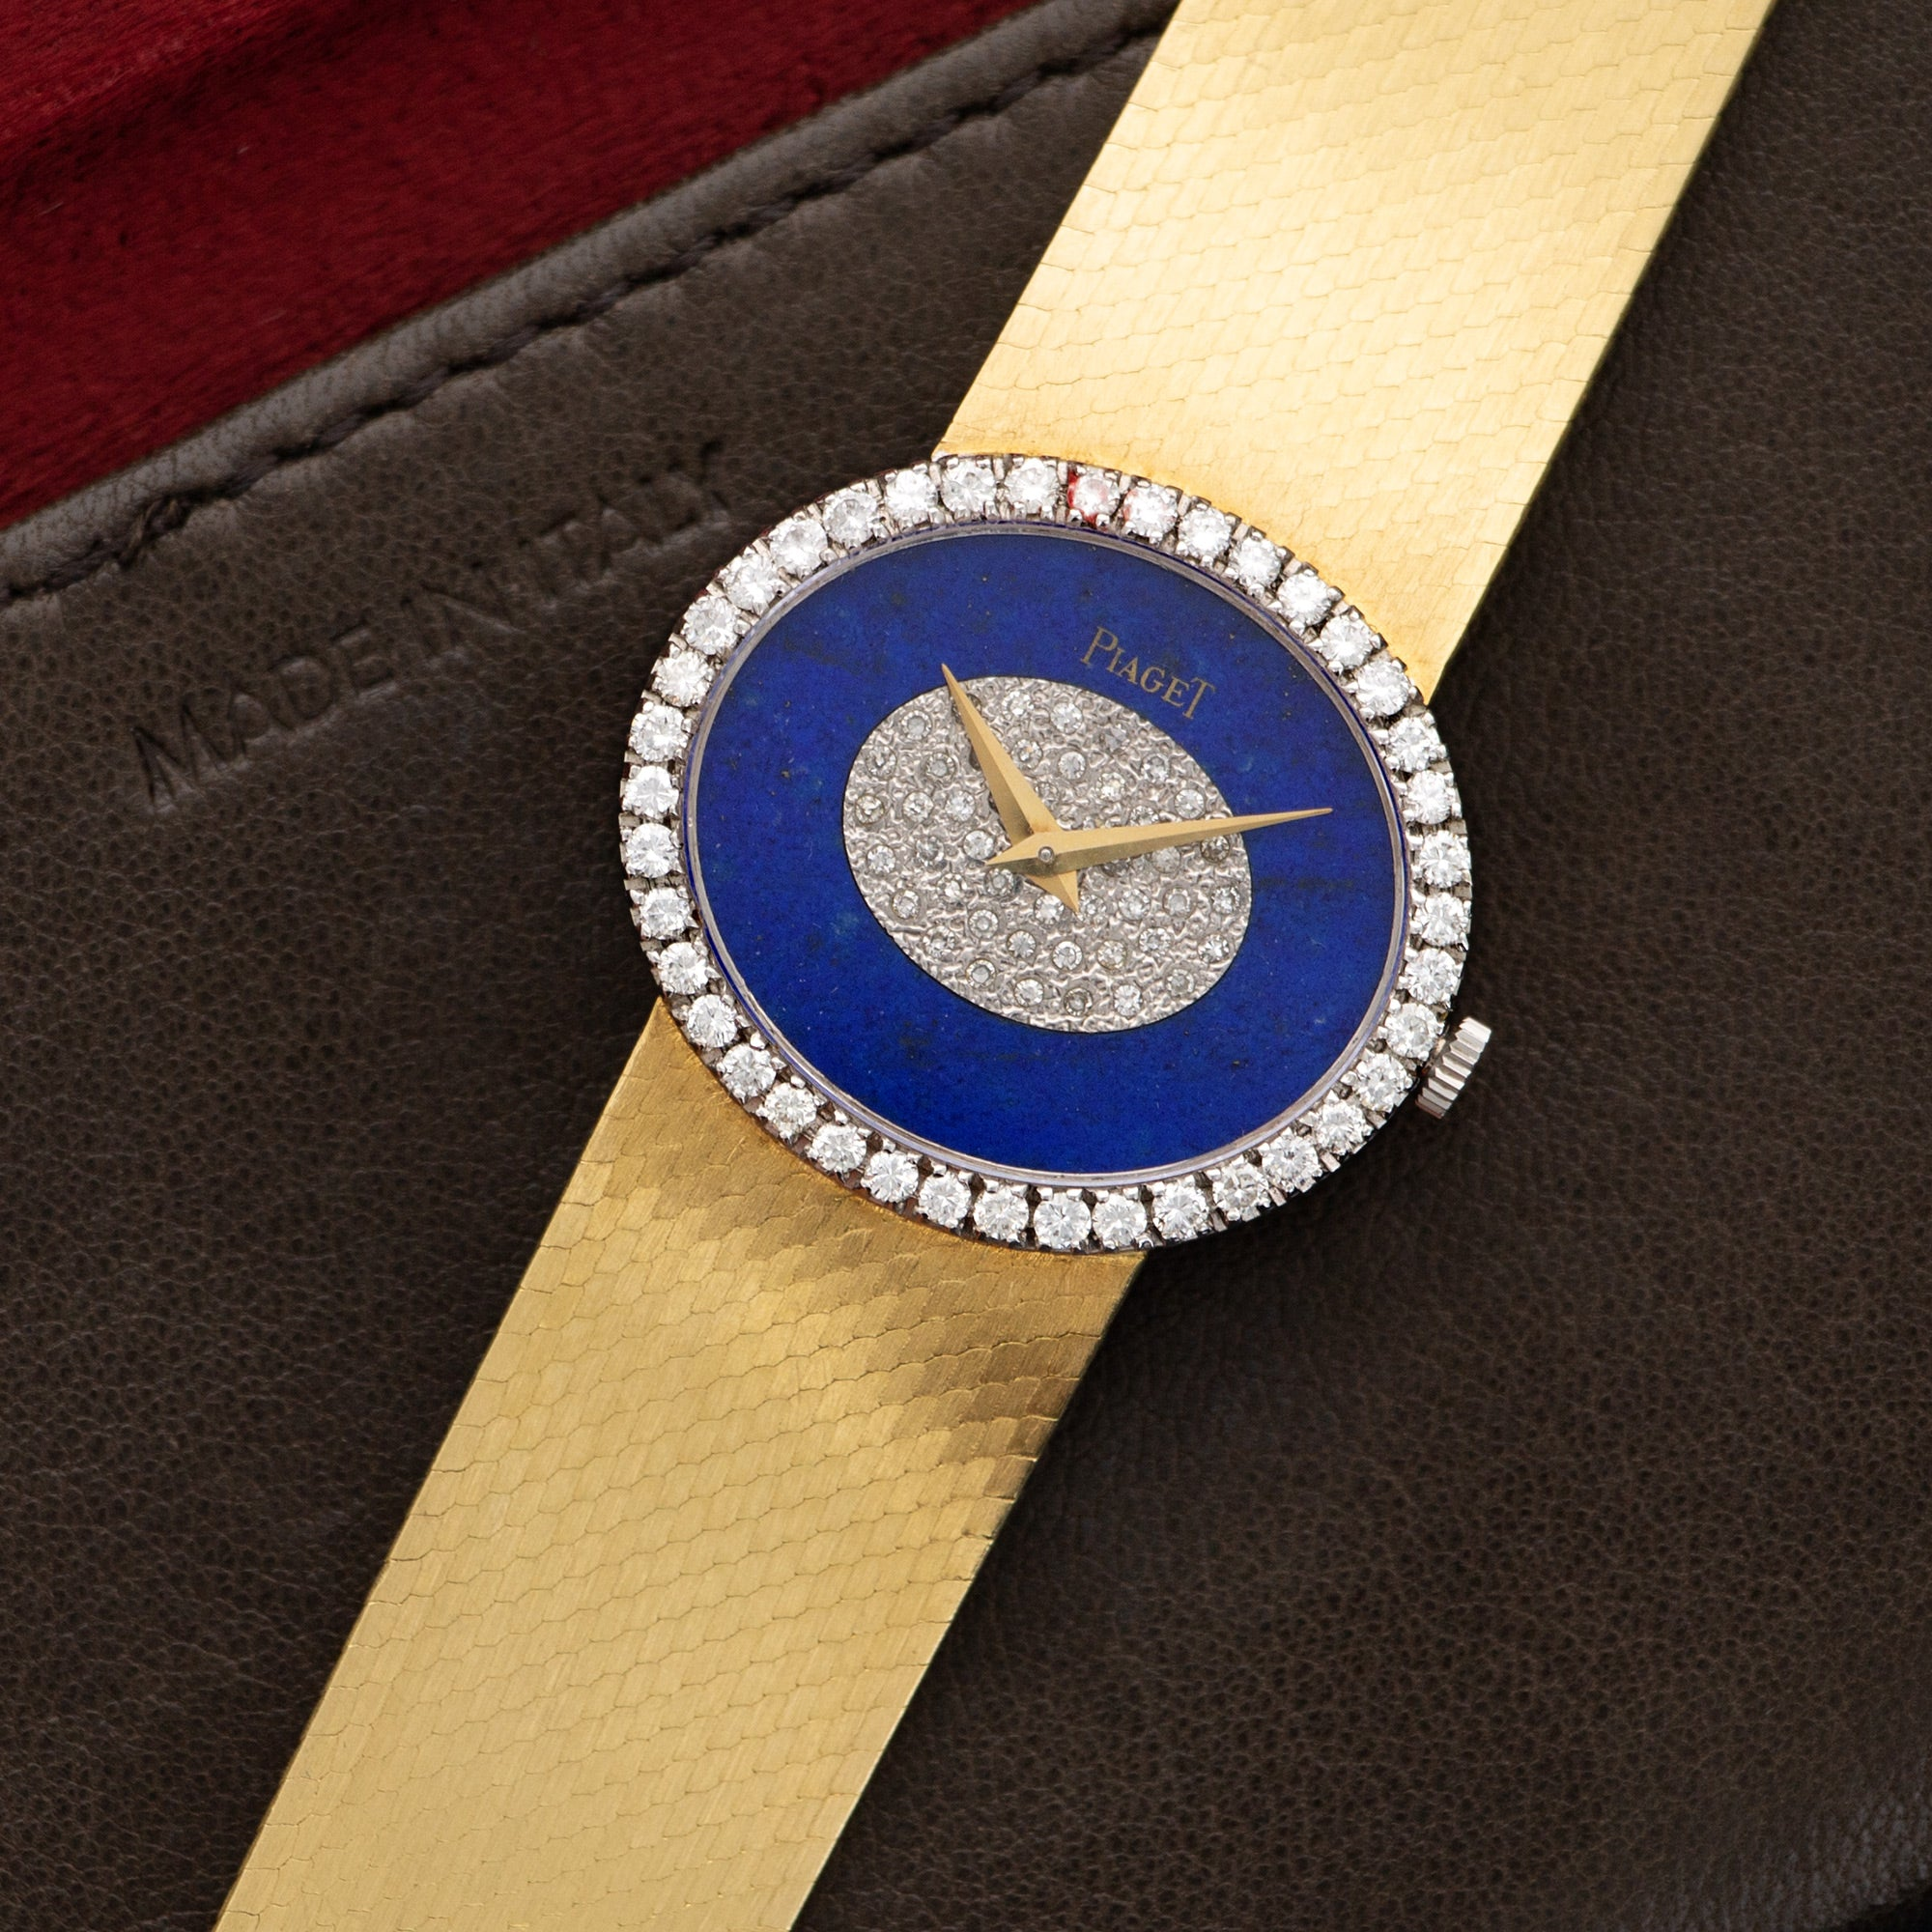 Piaget Vintage 9806 18k YG  Excellent NO STYLE SPECIFIED 18k YG Lapis and Diamonds 27mm Manual 1970s Yellow Gold Bracelet Leather Travel Case